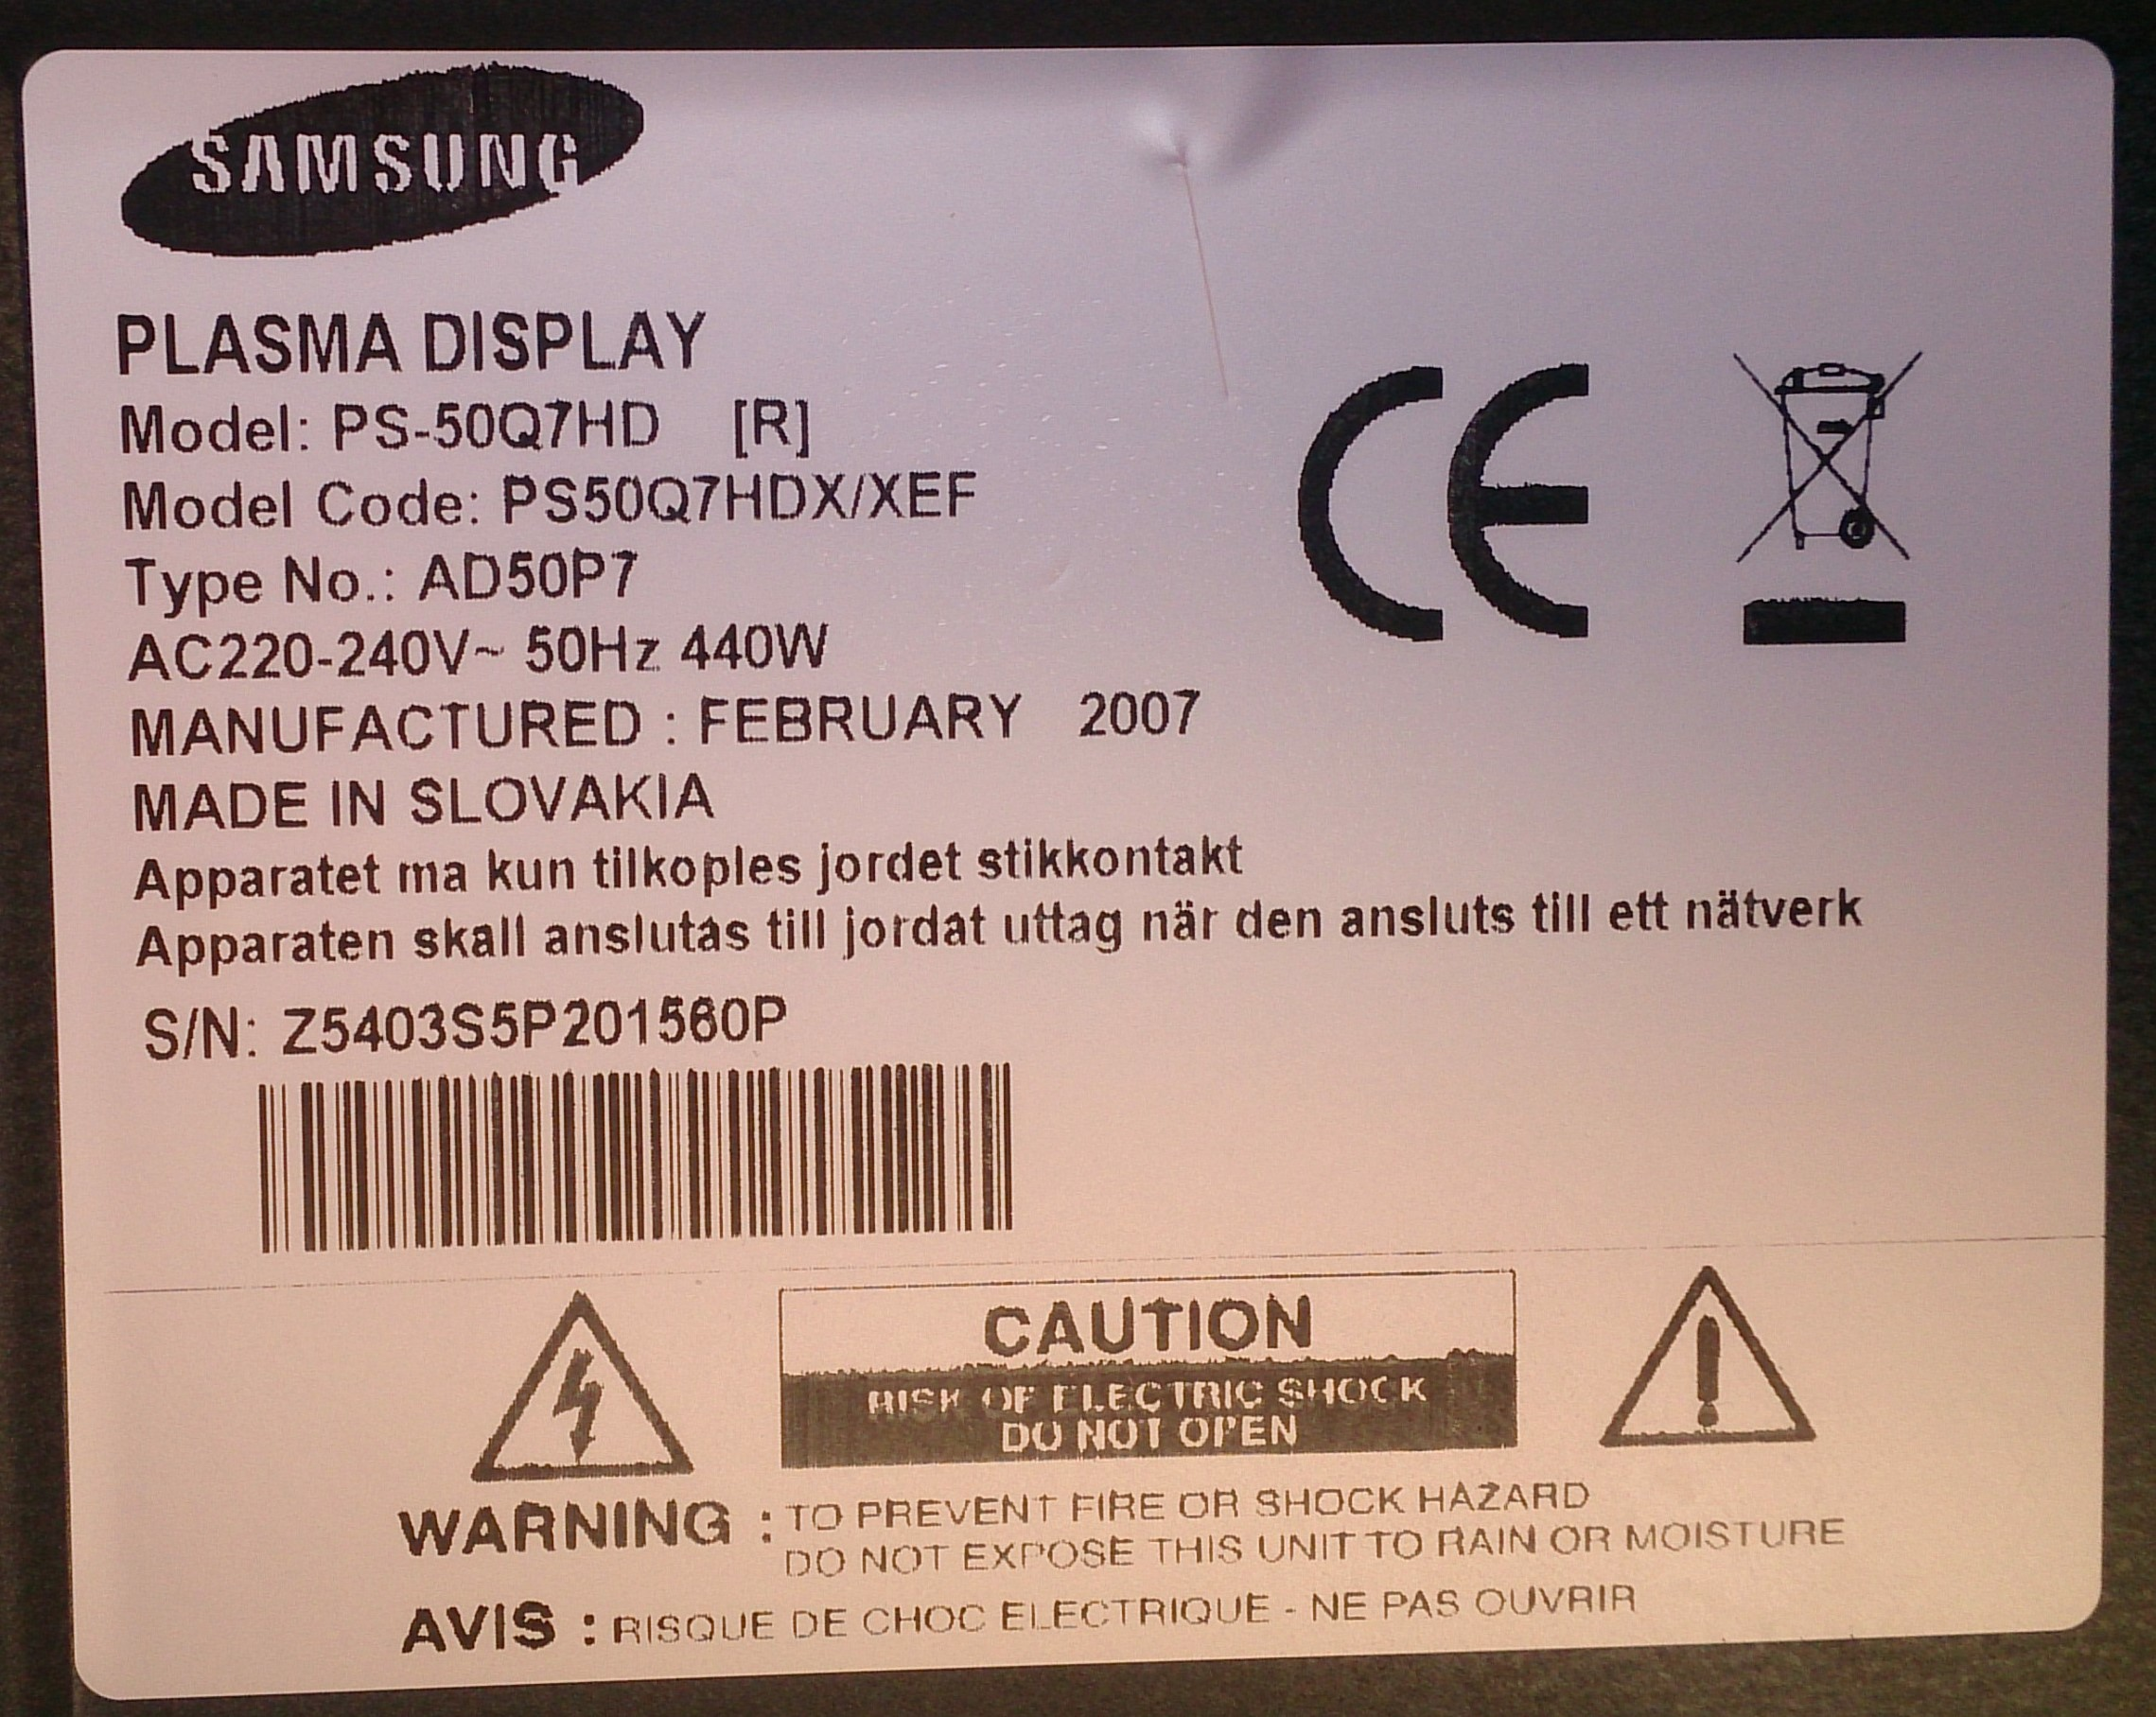 PLAMA DISPLAY SAMSUNG PS-50Q7HD (20).JPG